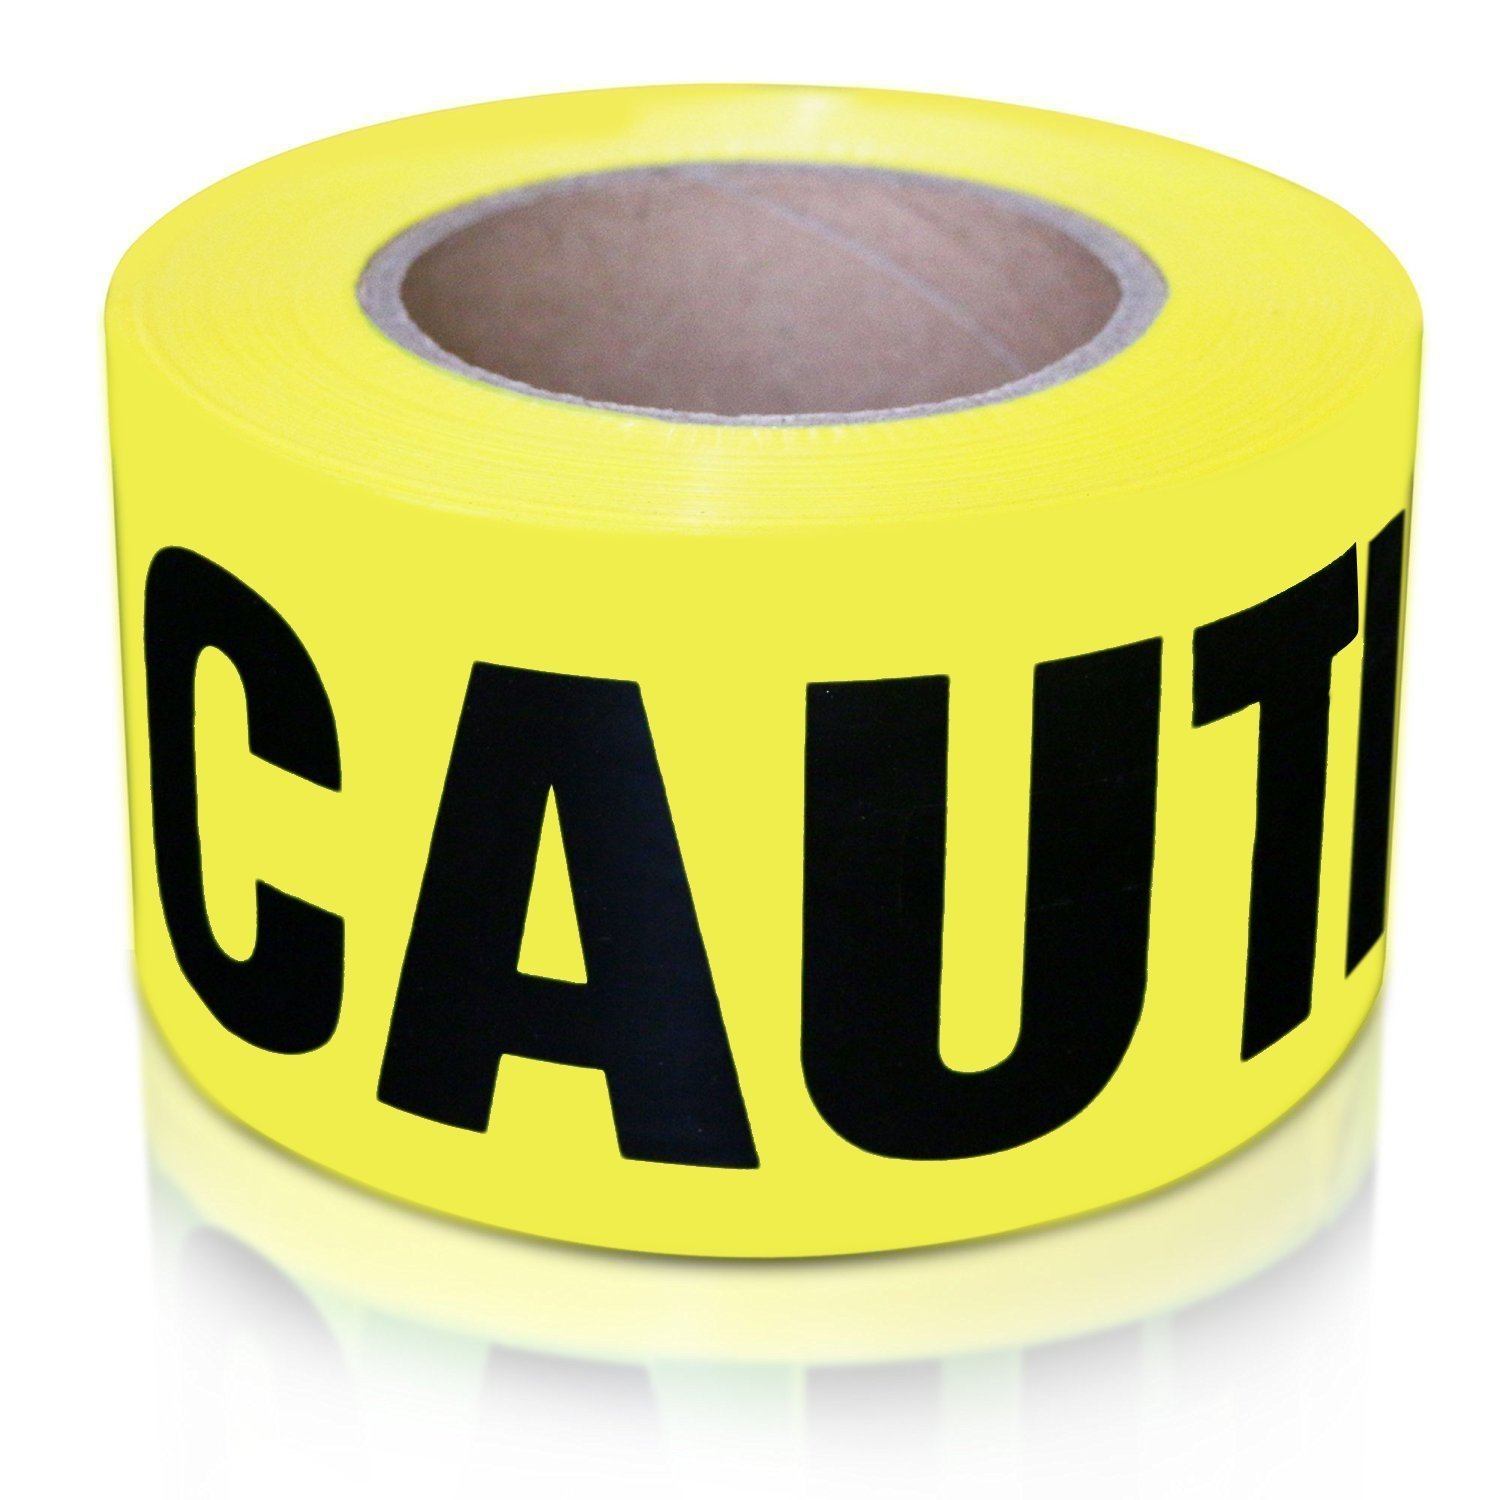 XFasten Caution Tape Roll, Non adhesive, 3-Inch x 1000-Foot Yellow Black Barricade Safety Tape- High Visibility for Workplace Safety